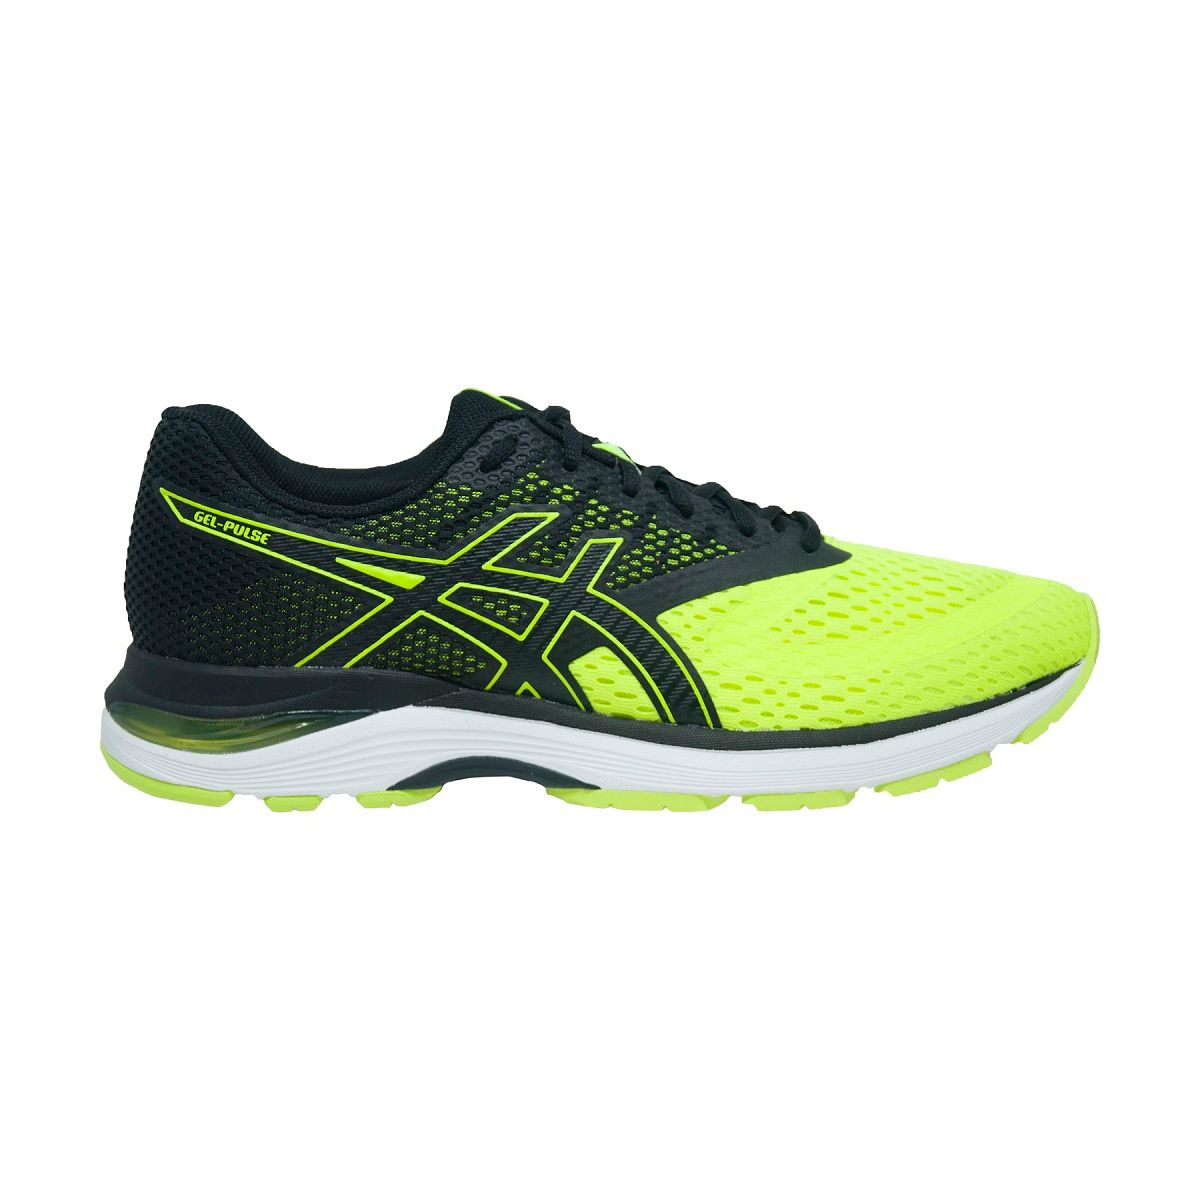 Tenis-Asics-GEL-Pulse-10